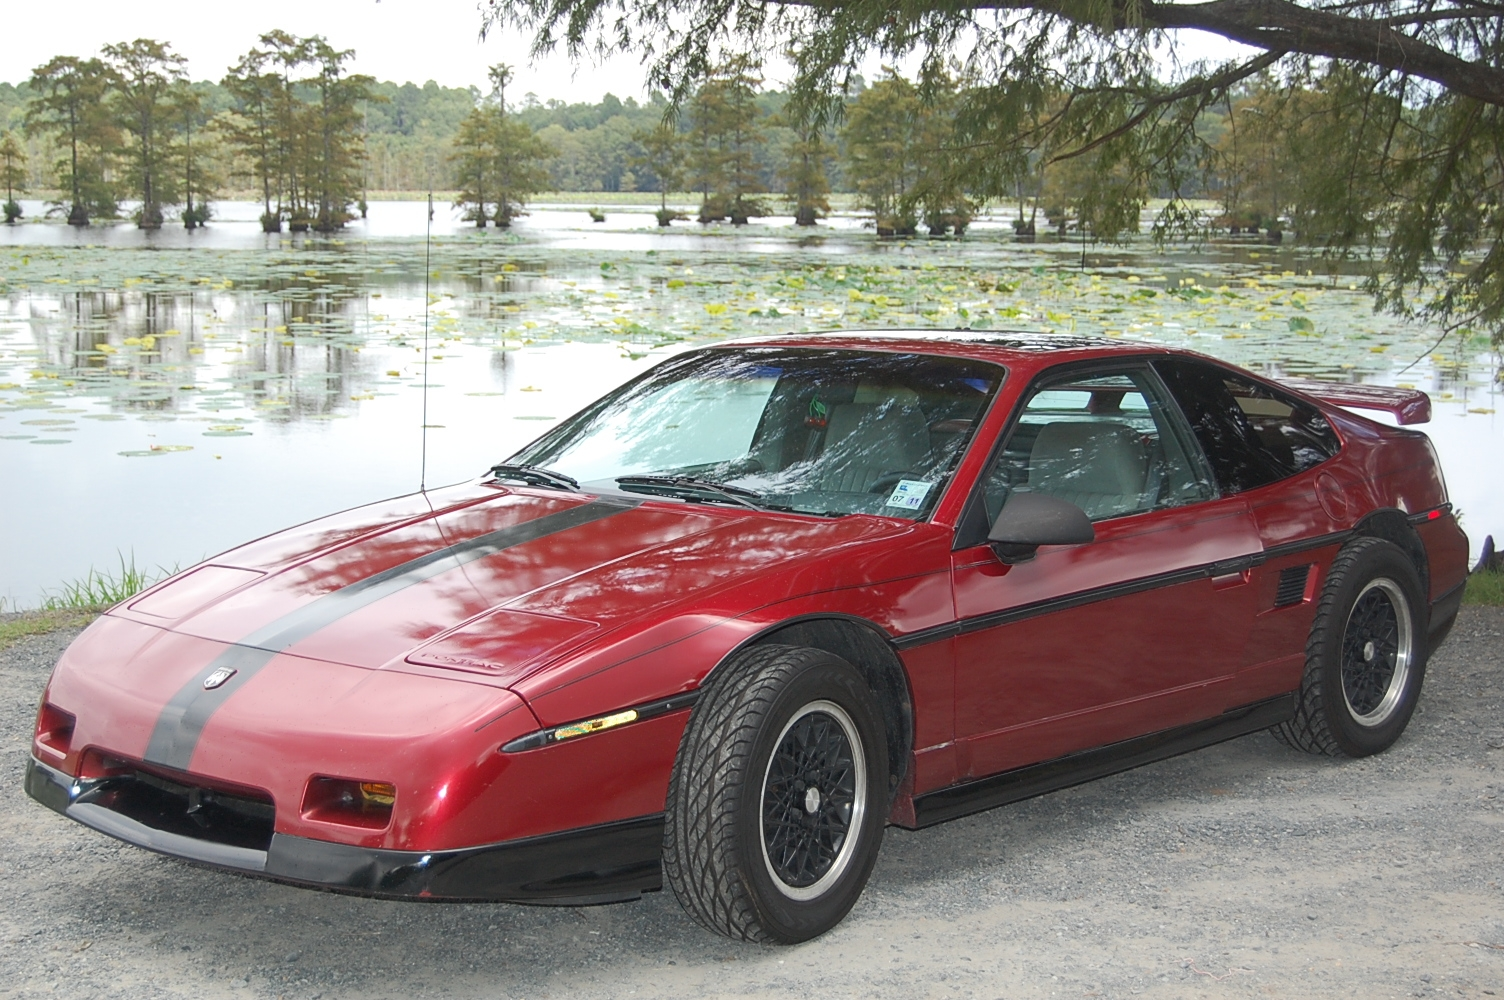 Another The AmmO ChicK 1988 Pontiac Fiero post... - 14672540